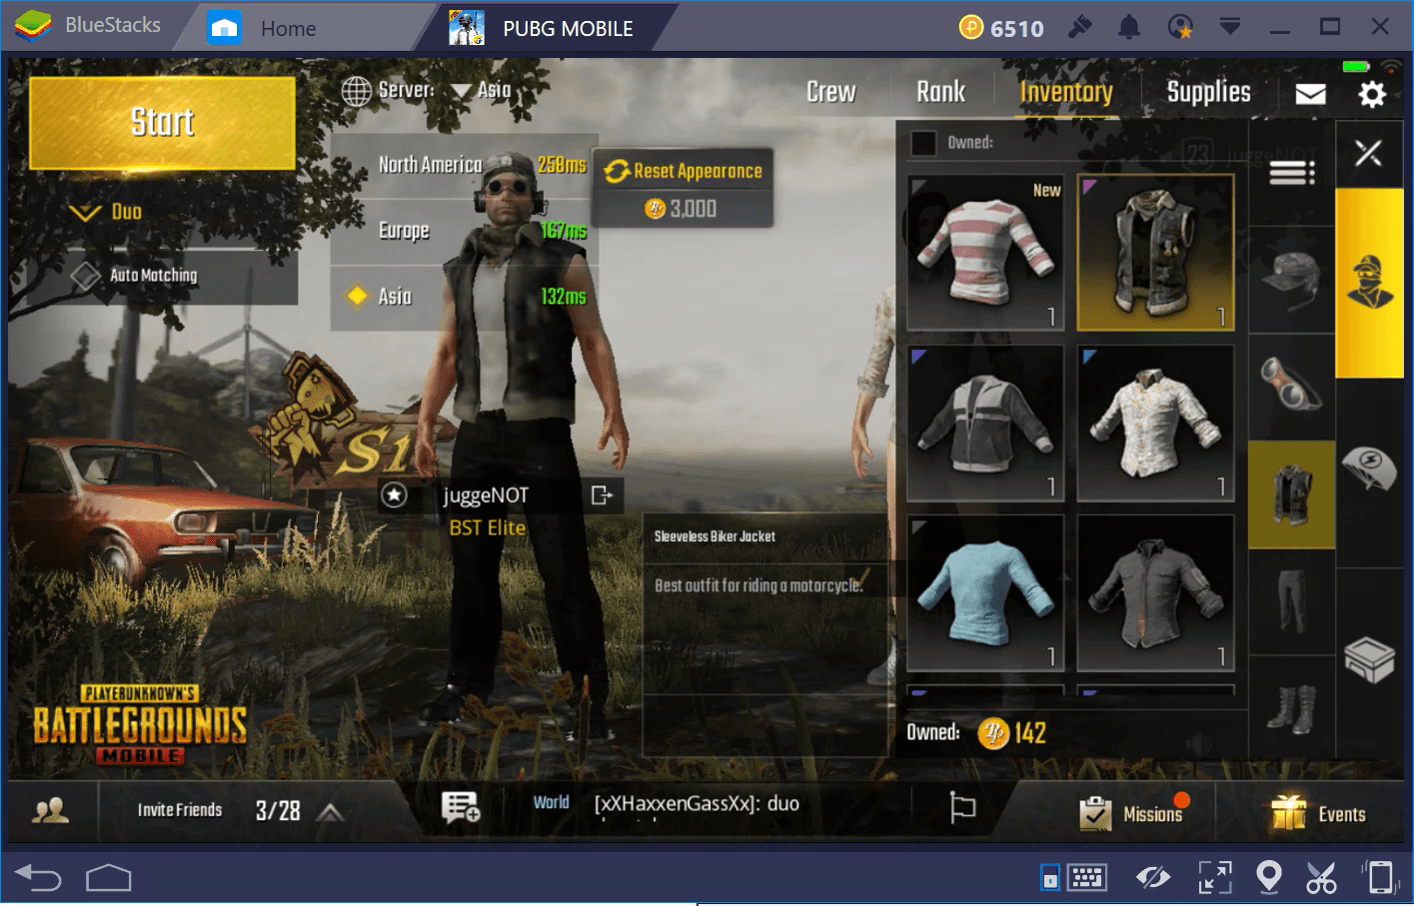 Top Gameplay Differences Between PUBG Mobile and PUBG | BlueStacks